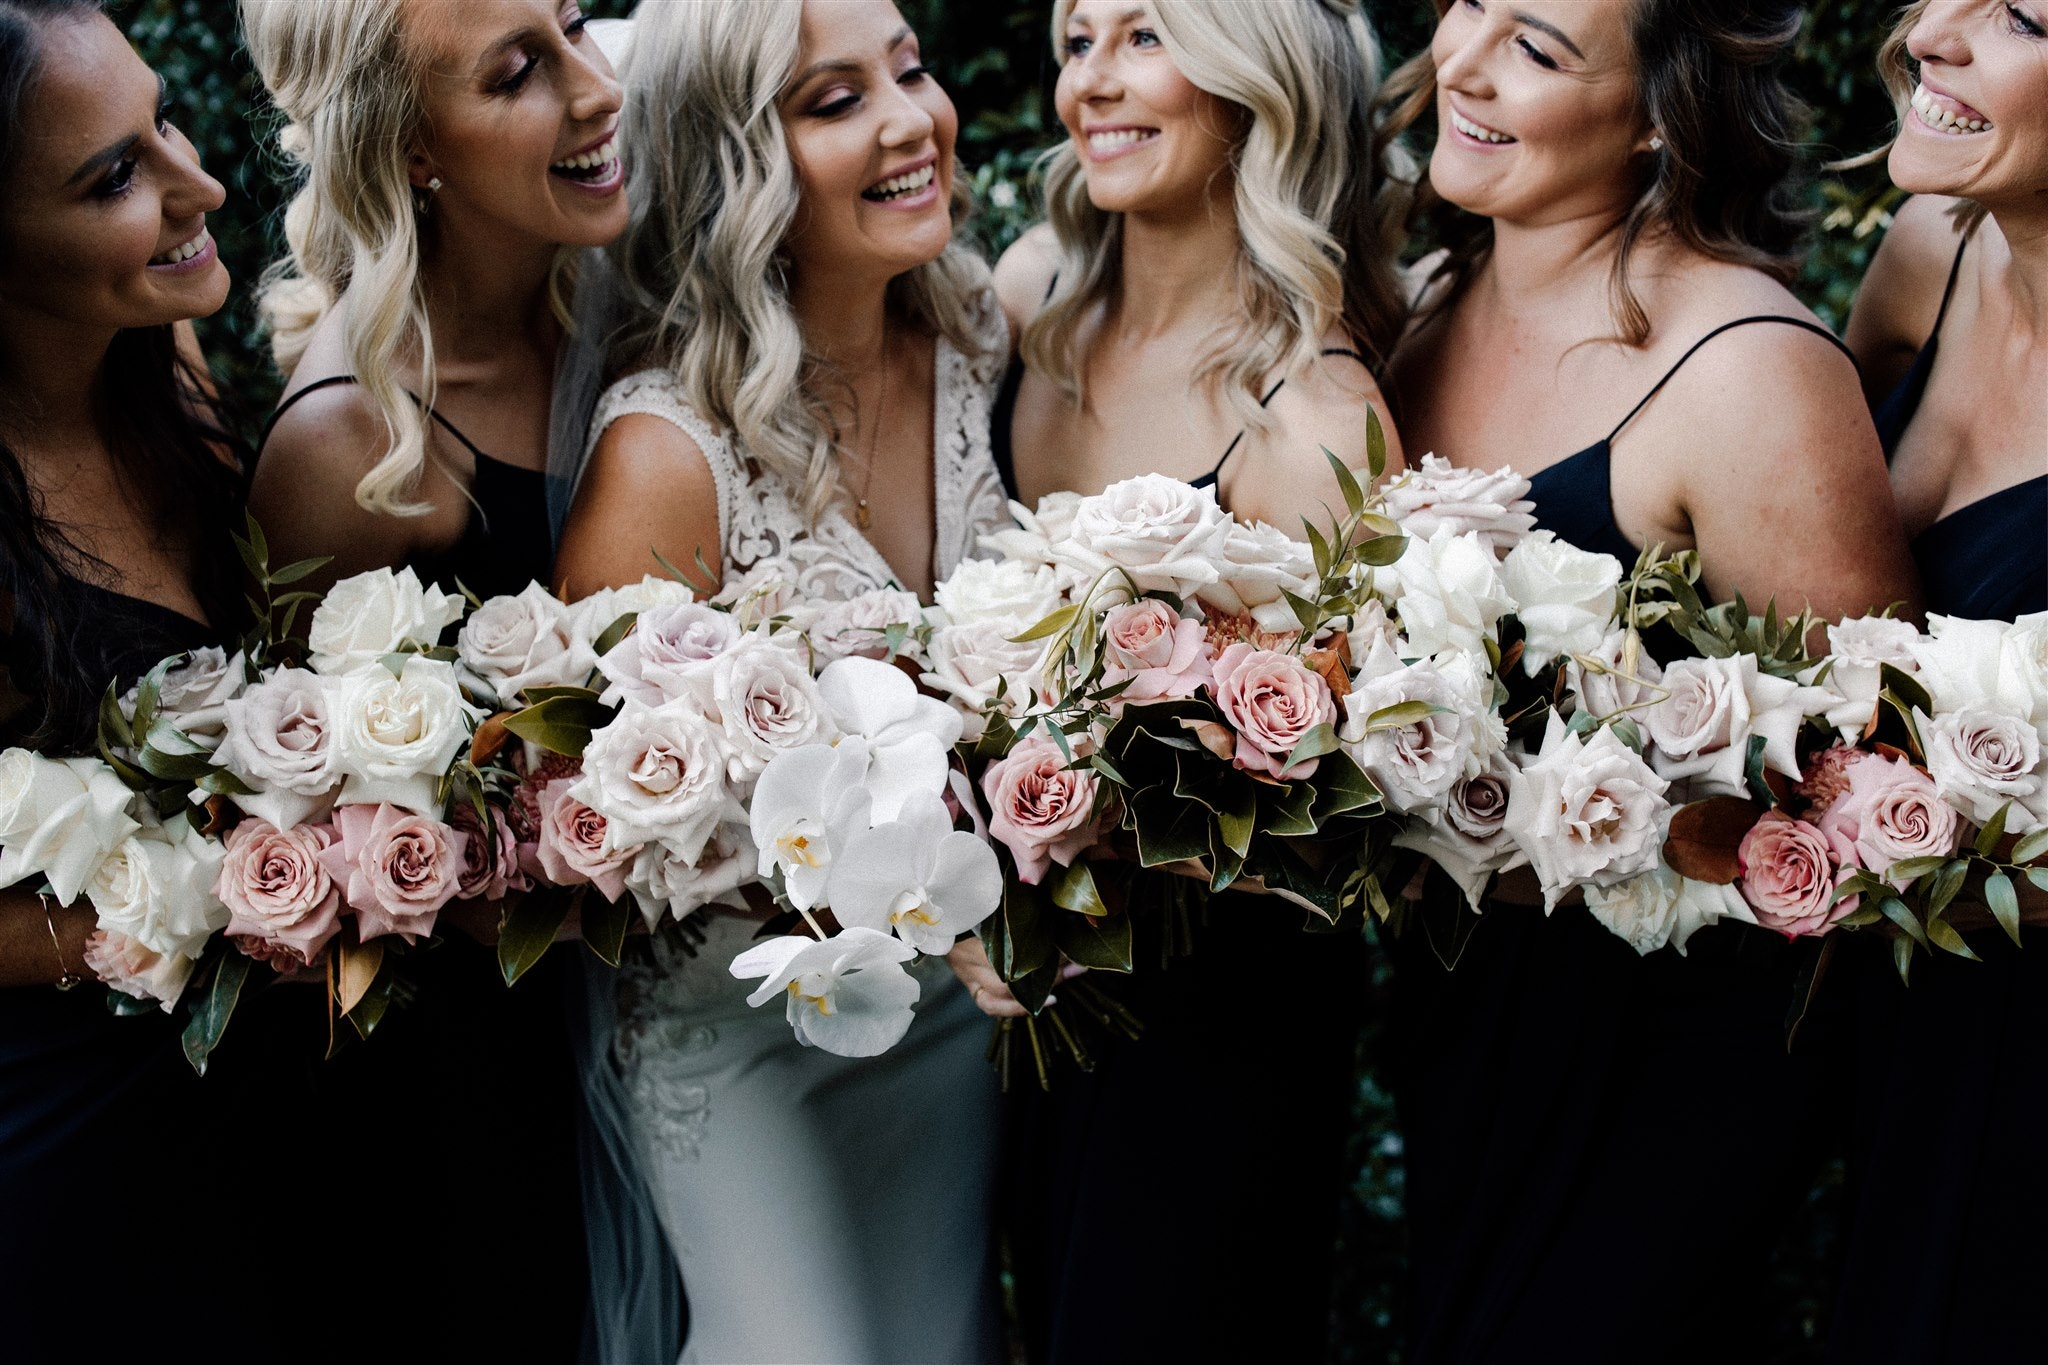 Bride posing with bridesmaids all holding bouquets